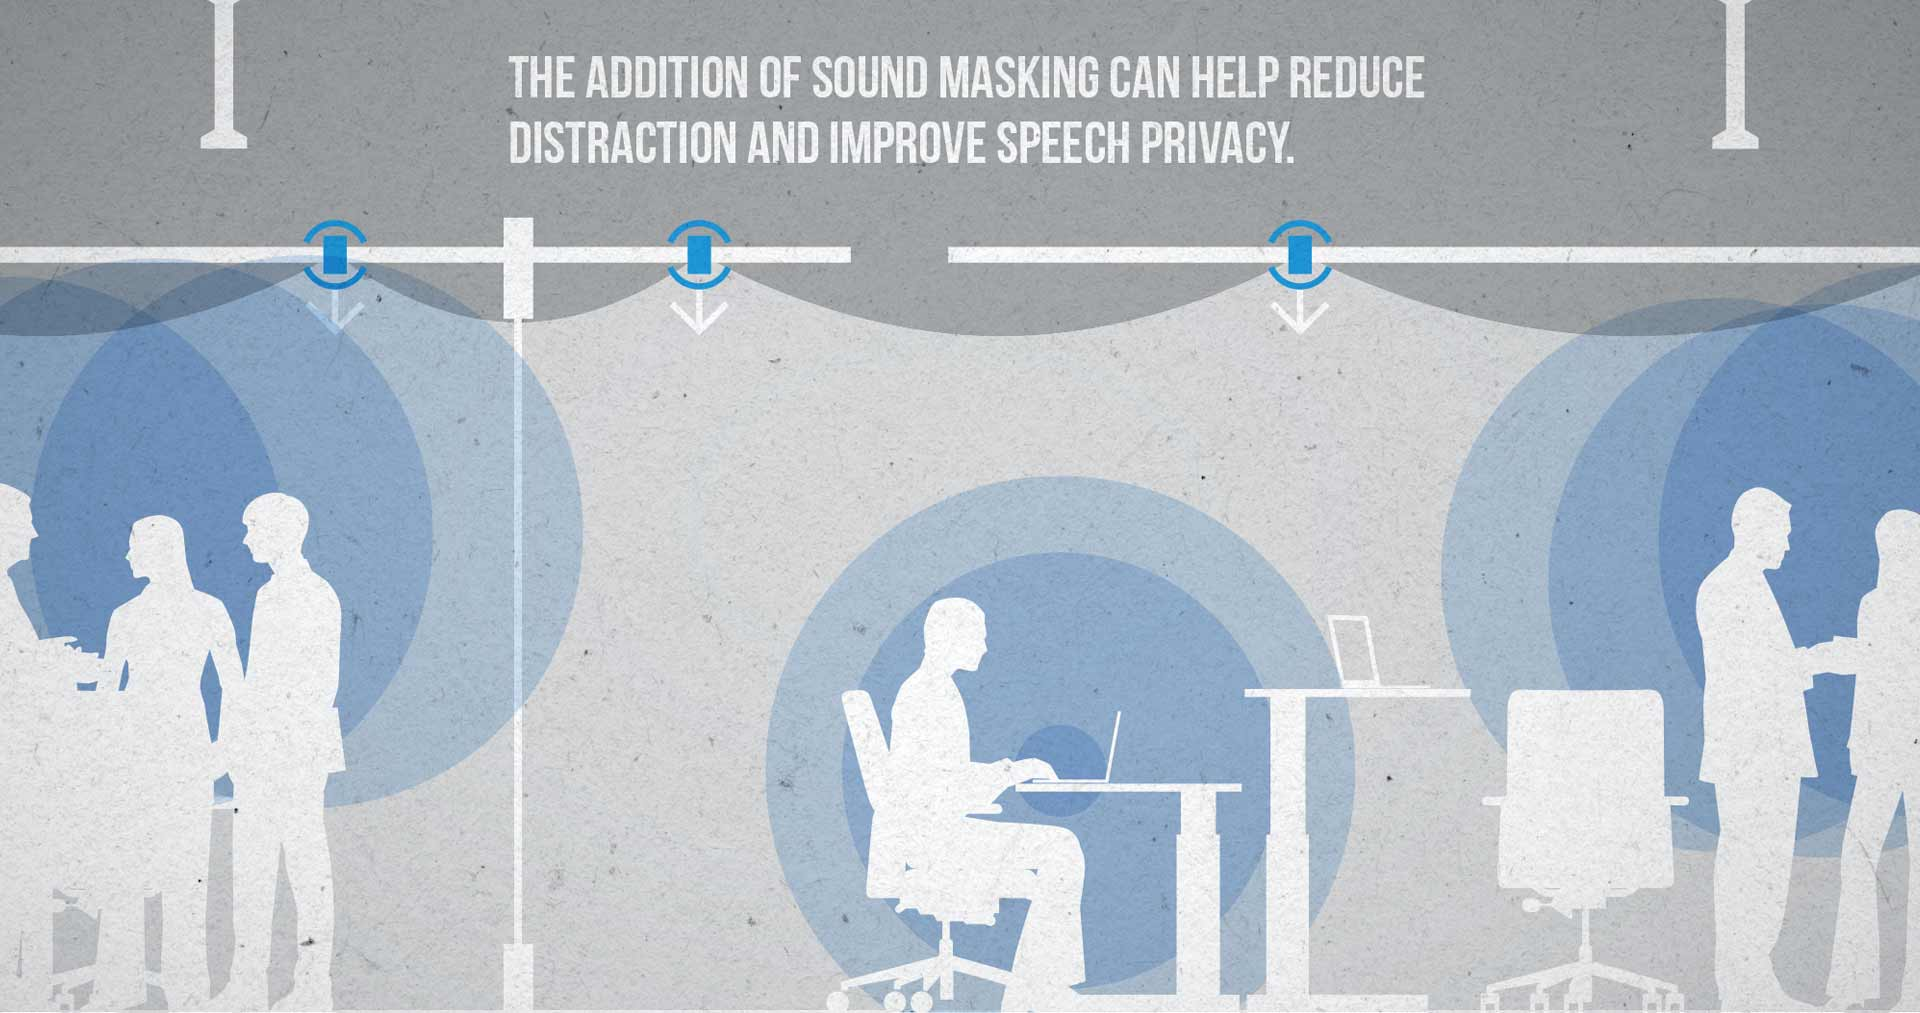 soundmasking-infographic-dl16